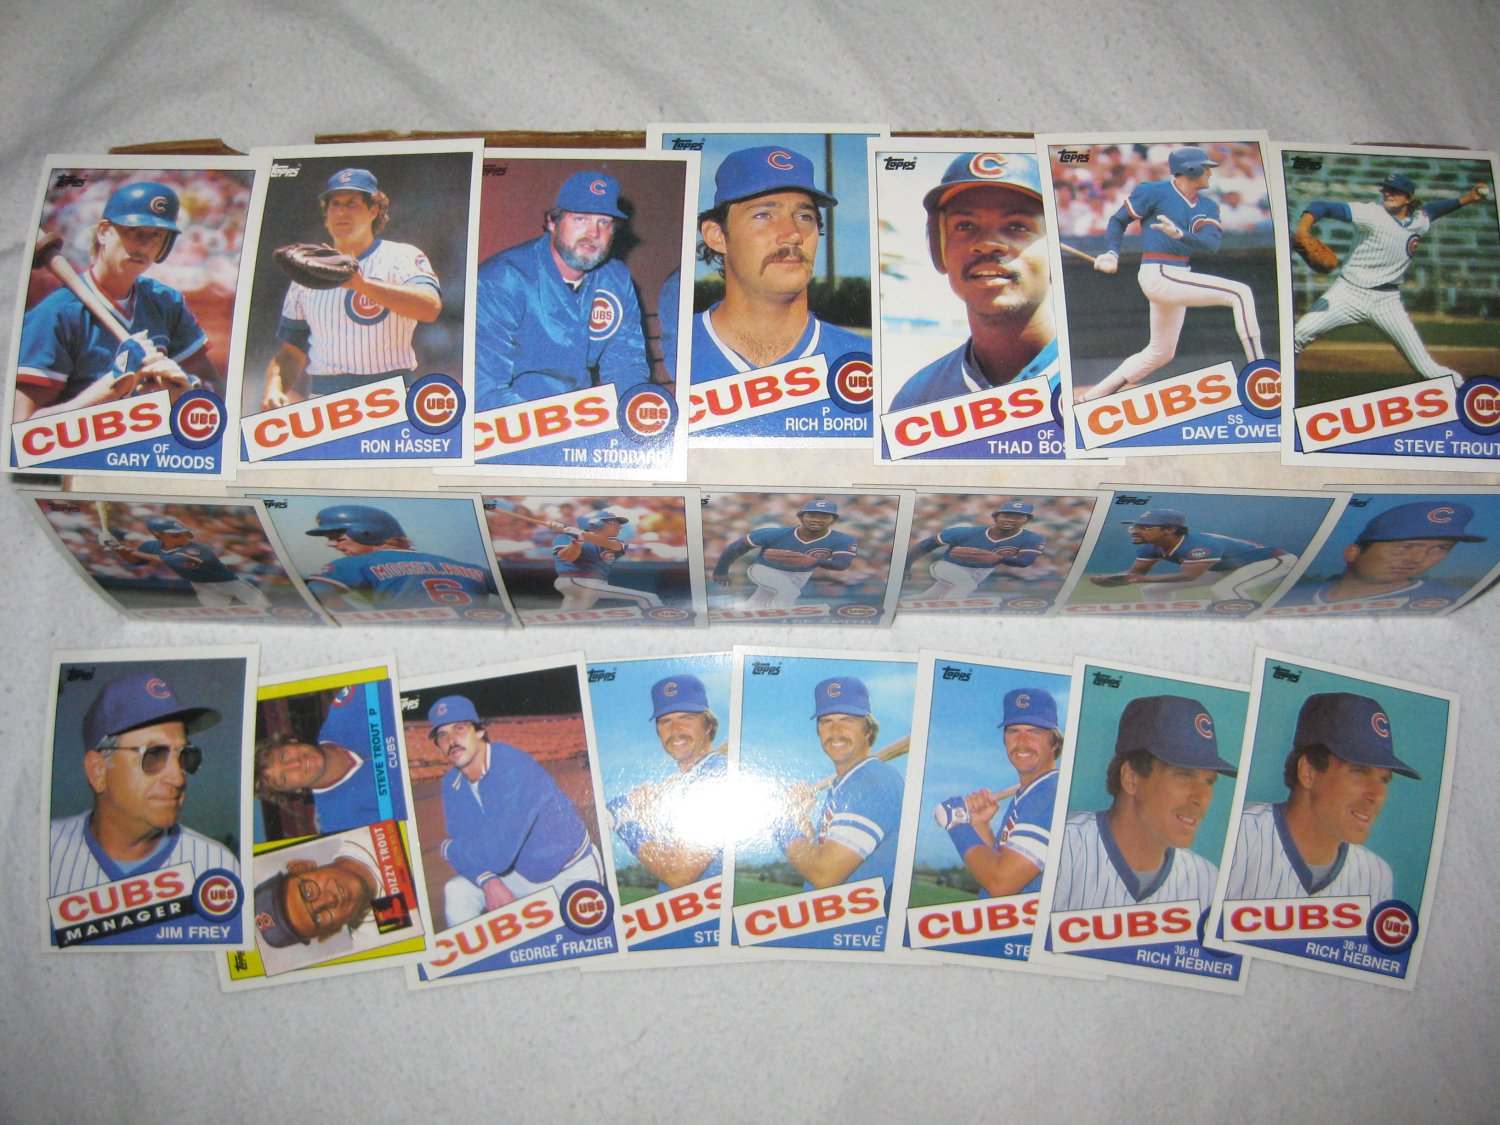 CHICAGO CUBS 1985 TOPPS BASEBALL CARDS TEAM LOT FREE SHIPPING !!!